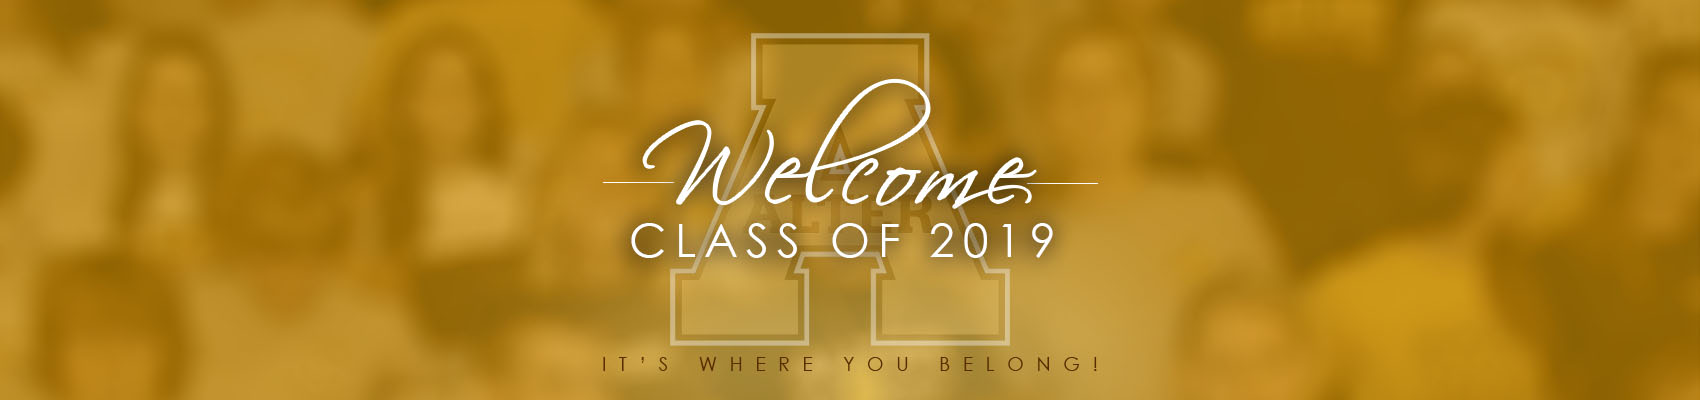 welcome class 2019